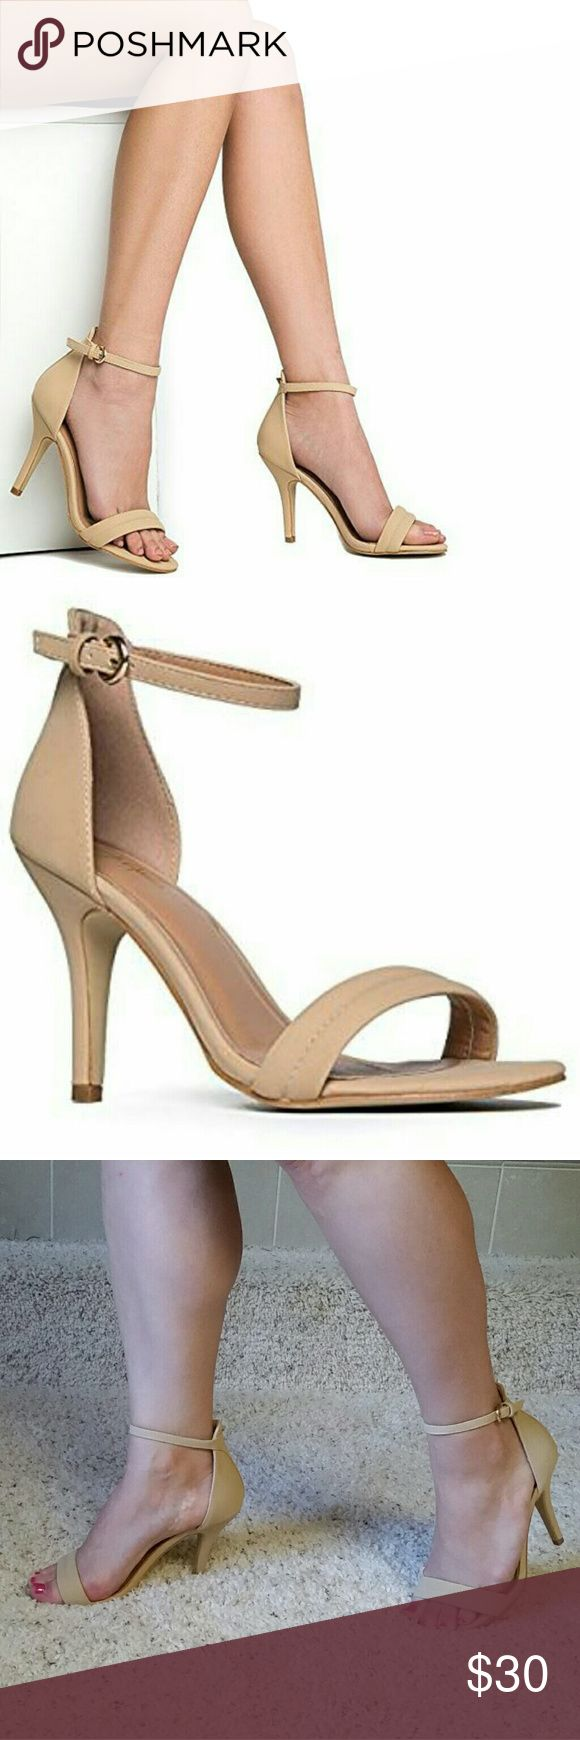 J. Adams Grammy nude strappy high heels Gorgeous new j. Adams nude slim strappy heels. Perfect elegant dress heels. Size 8 Forever 21 Shoes Heels